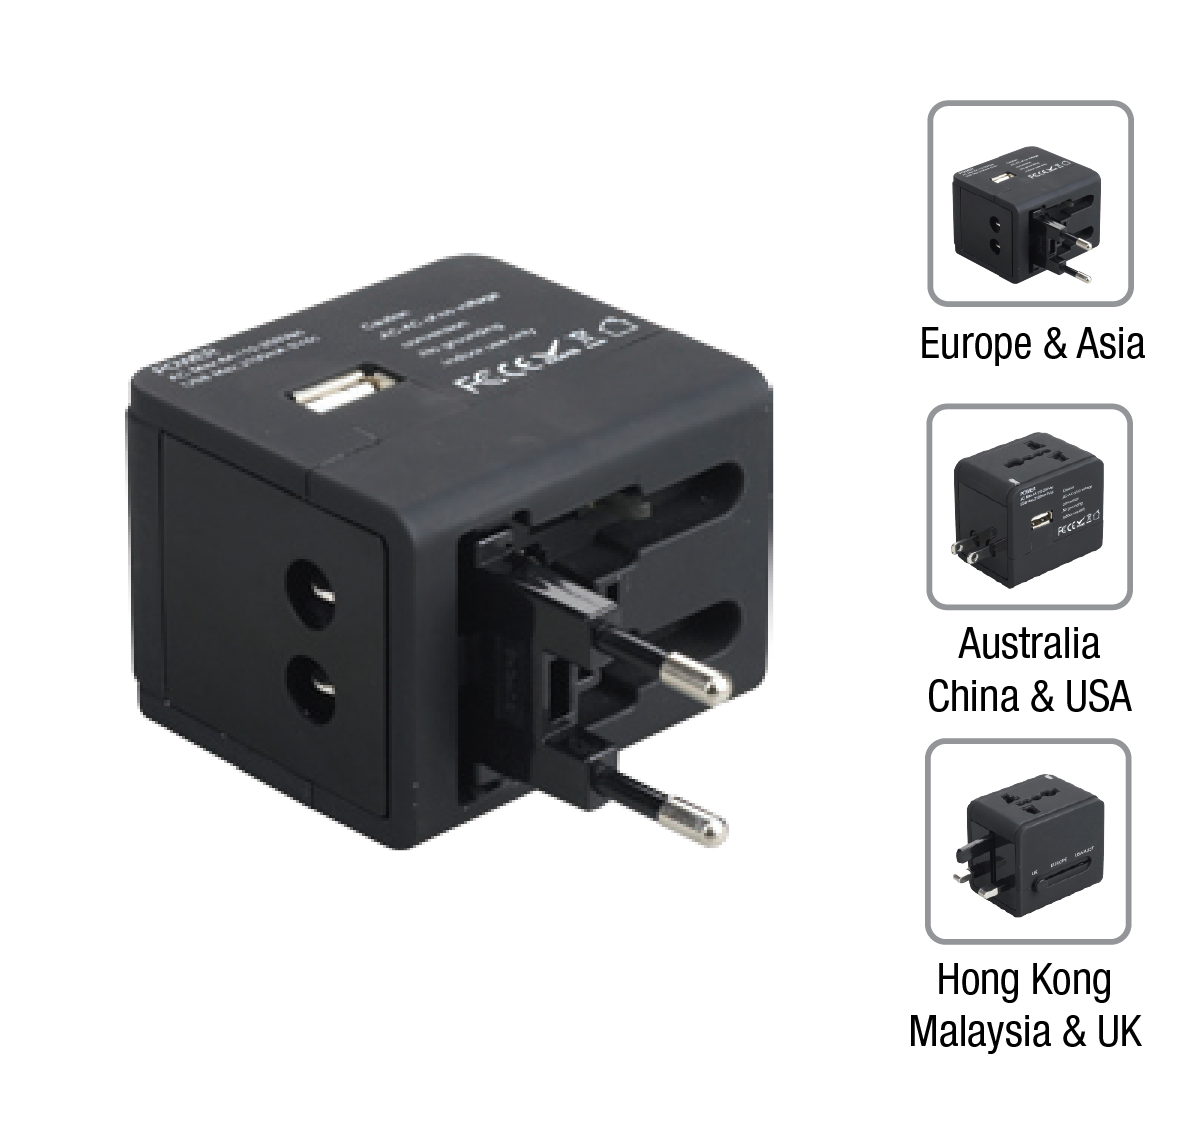 Univ Travel Adaptor USB 2.1 A (Black)